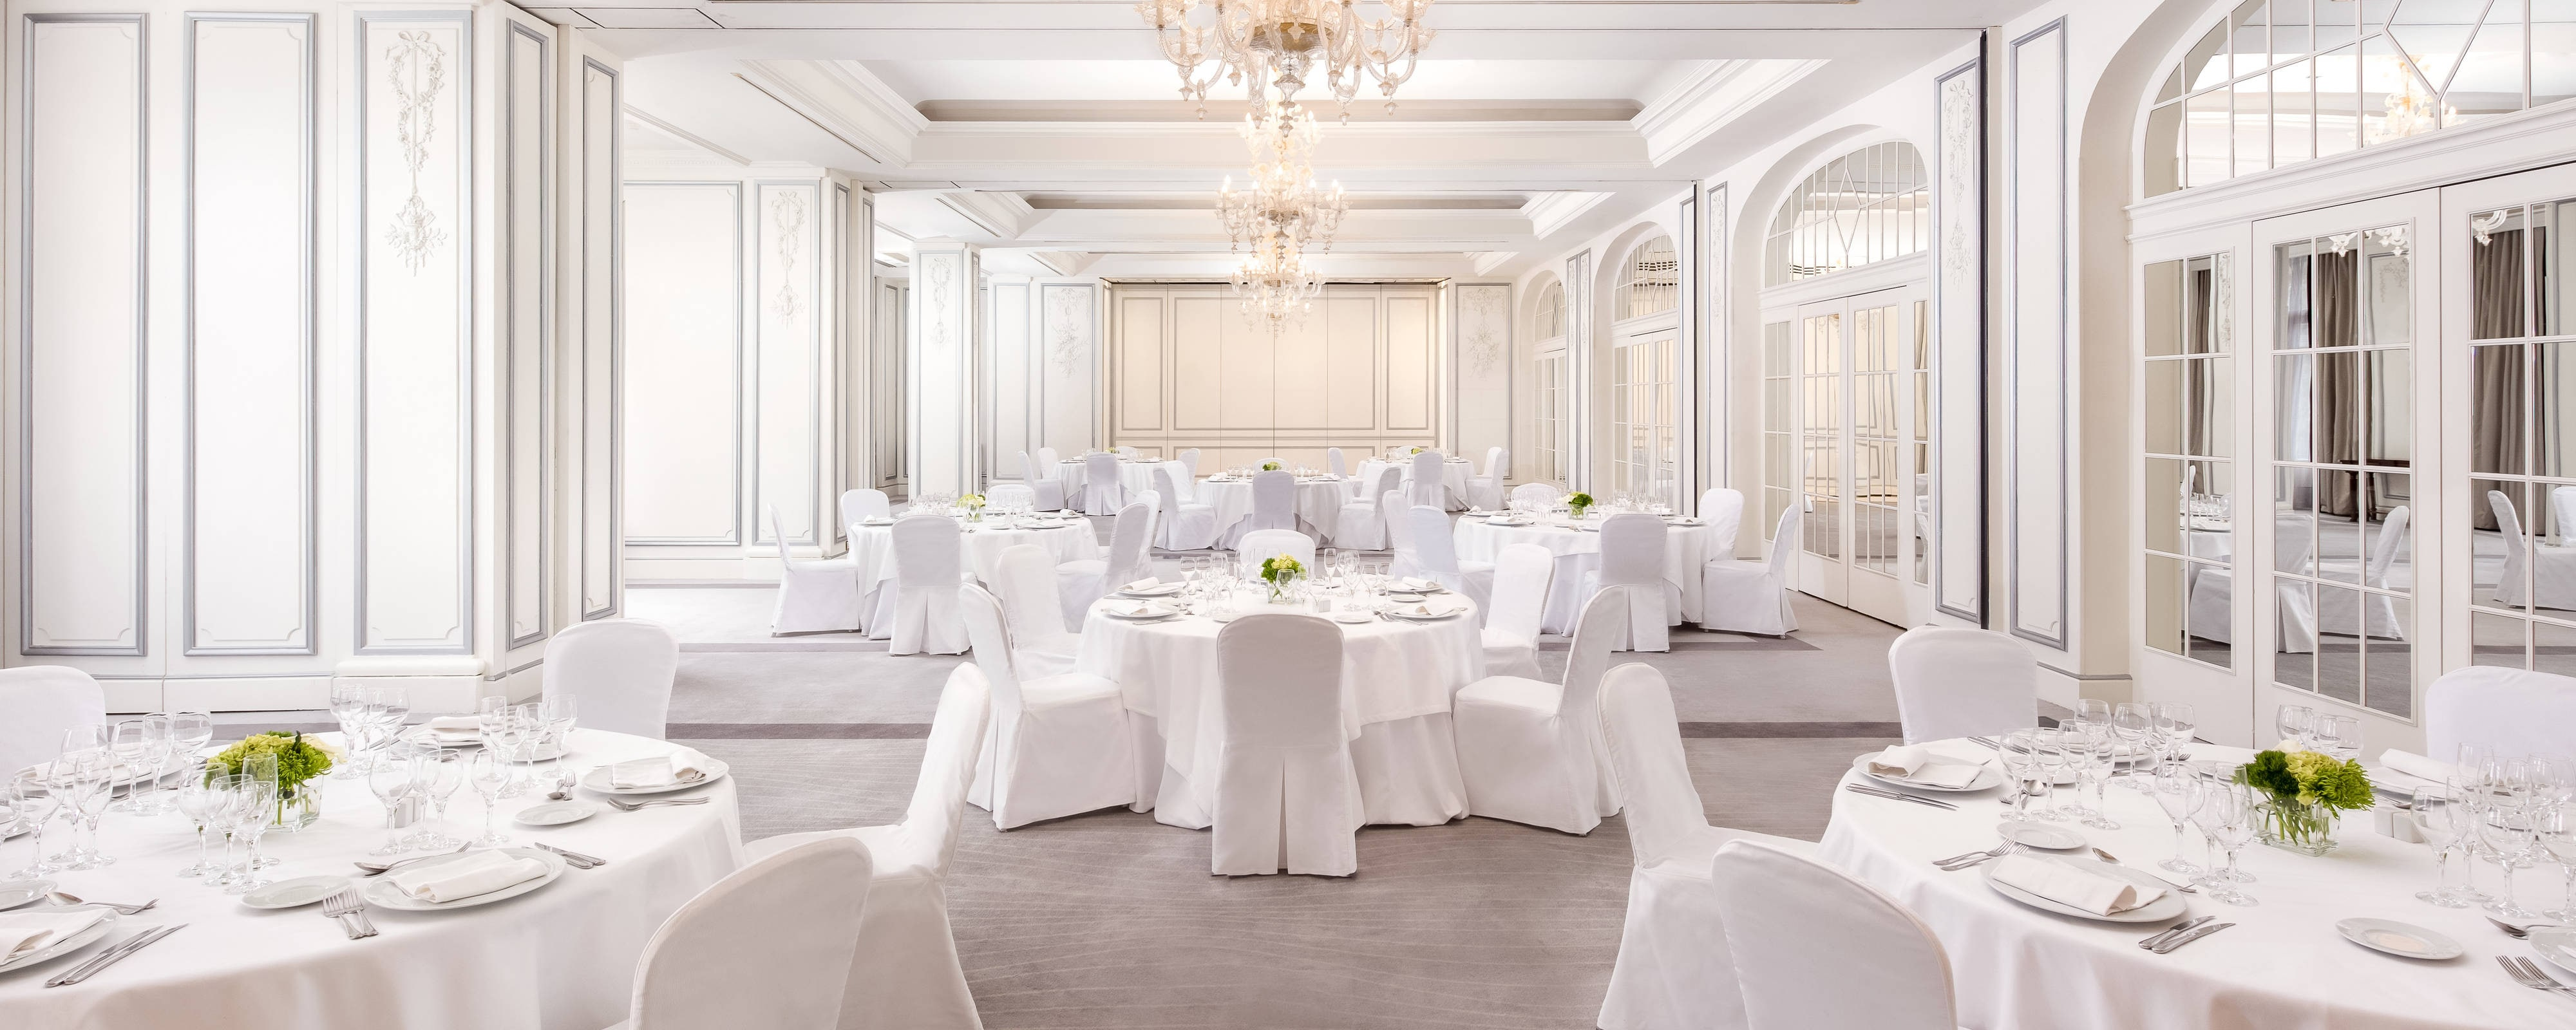 Salones Eventos Madrid Wellness Hotel In Madrid The Westin Palace Madrid